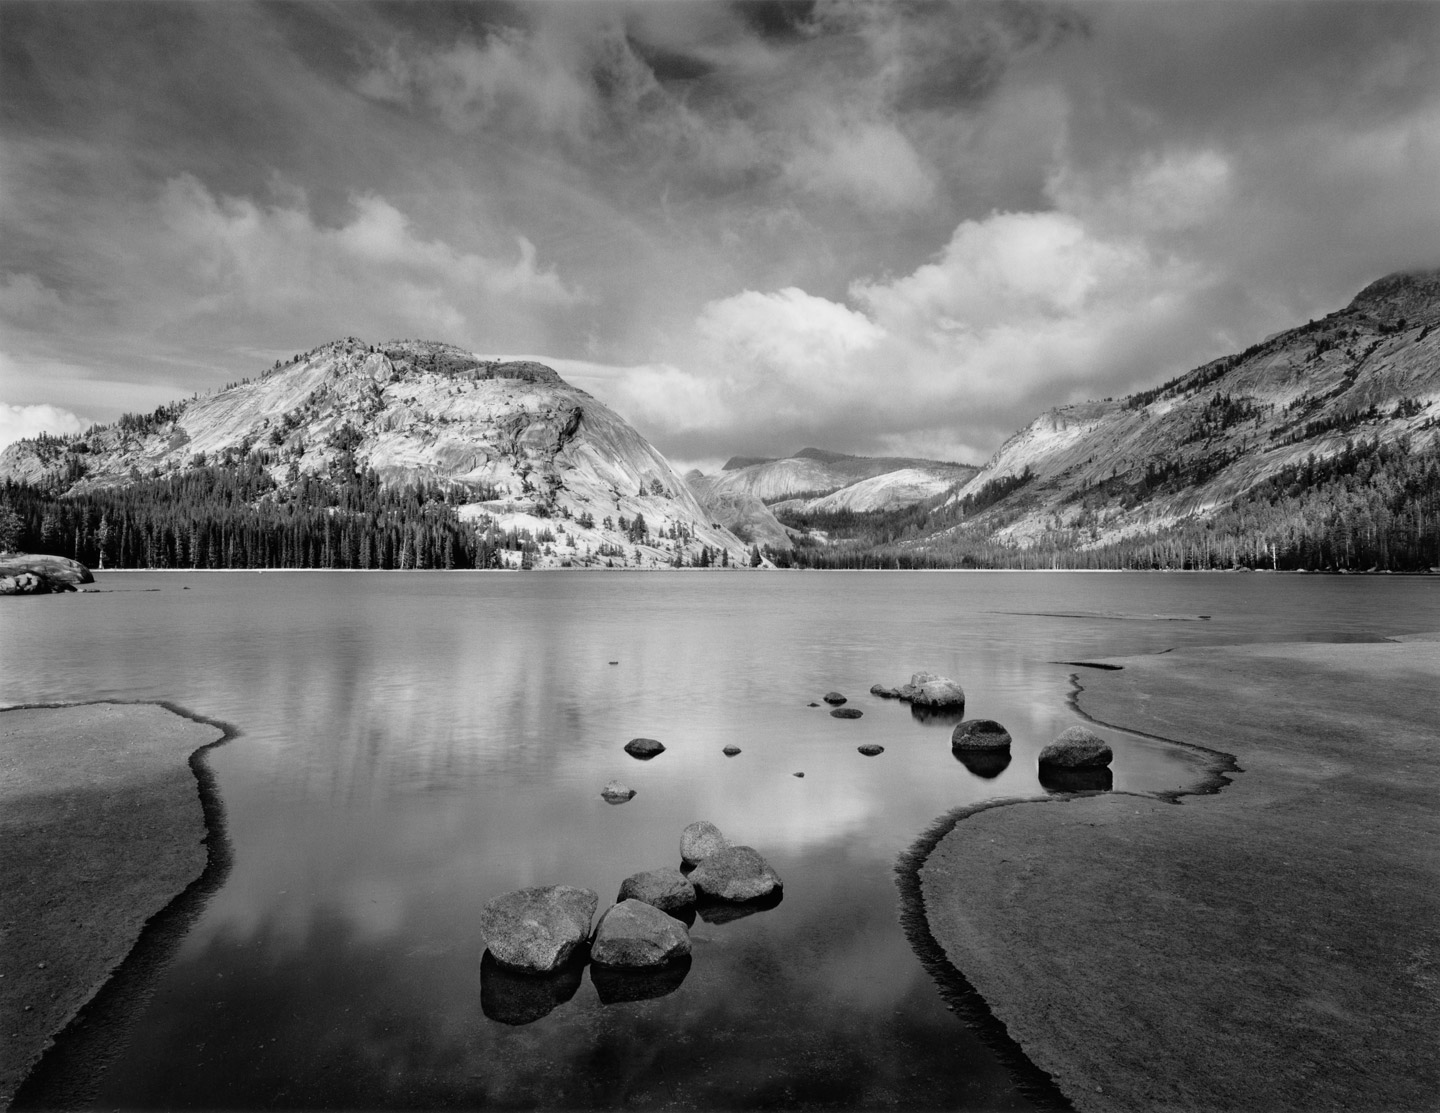 ansel adams 3 Original footage documenting the creative life of ansel adams this 1958 documentary revealing adams' technical approach to photography.